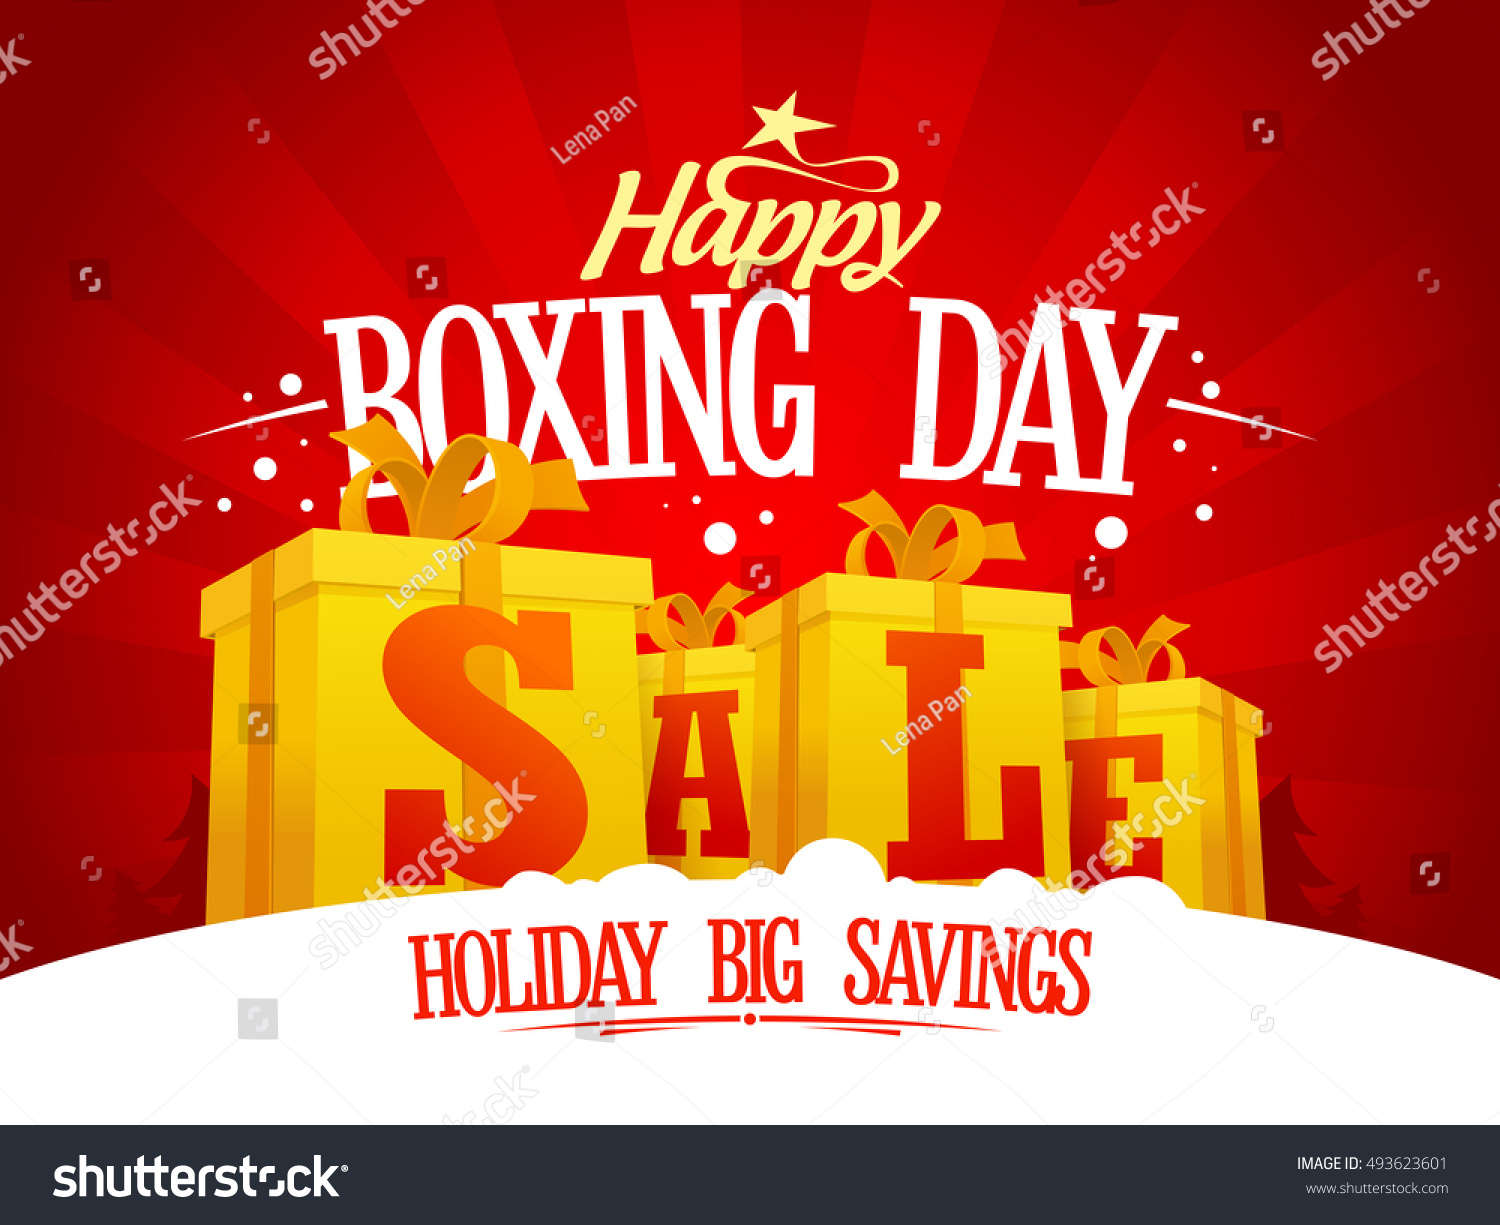 Boxing Day Sale Design Concept With Golden Gift Boxes Holiday Savings Banner